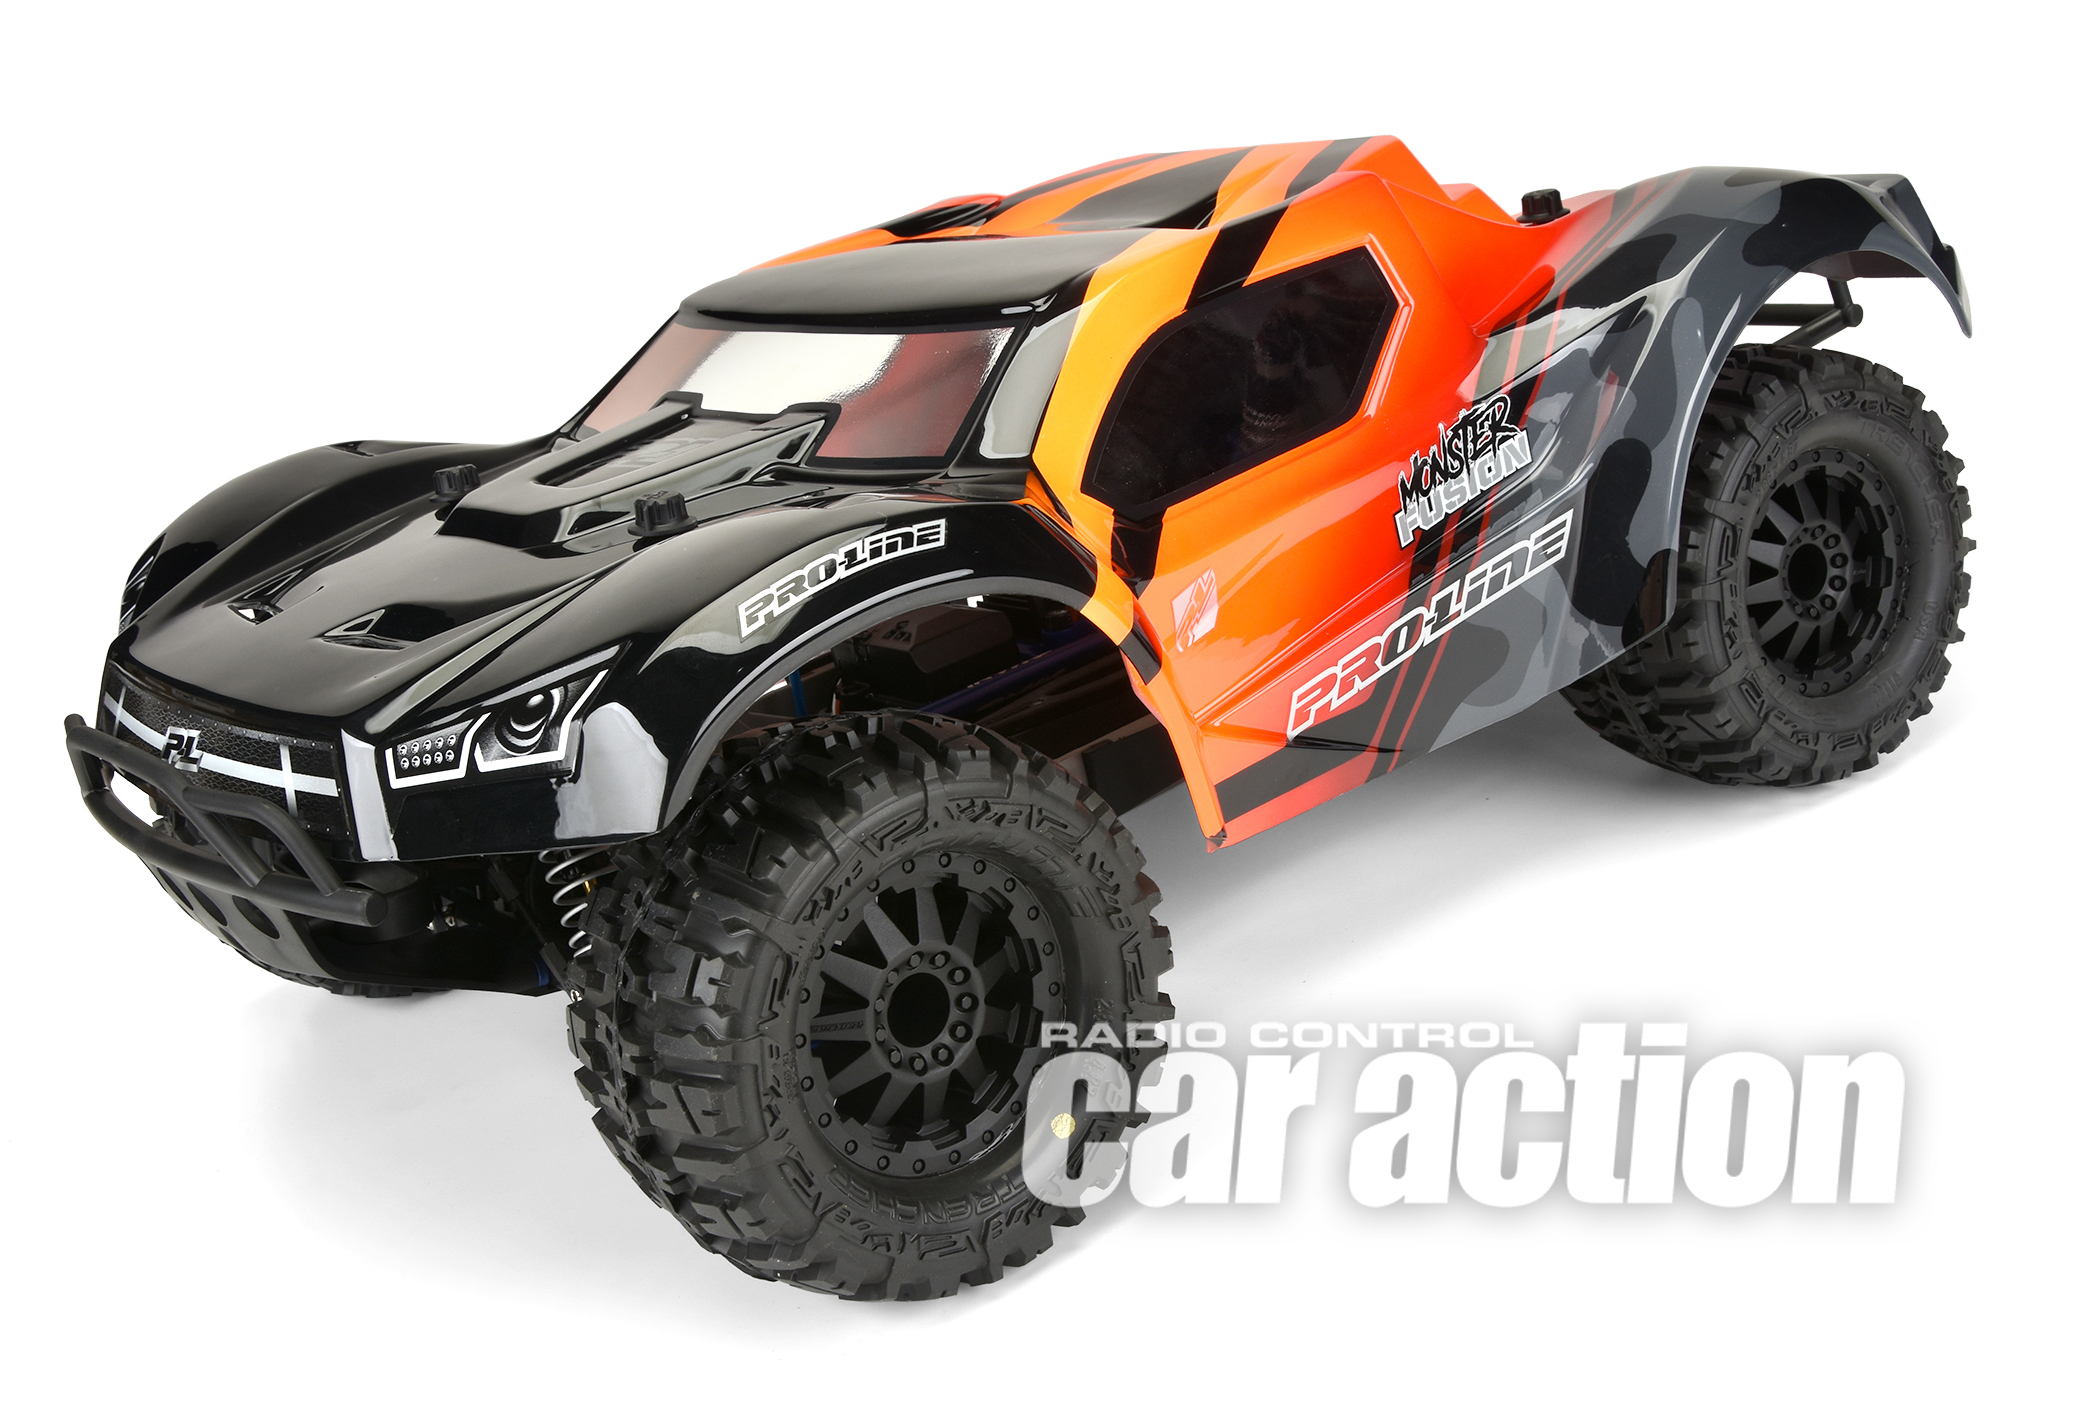 The body is designed to fit Traxxas Slash and Slash 4X4 models and you can expect Pro Line to officially announce the body tomorrow as item no 3498 17